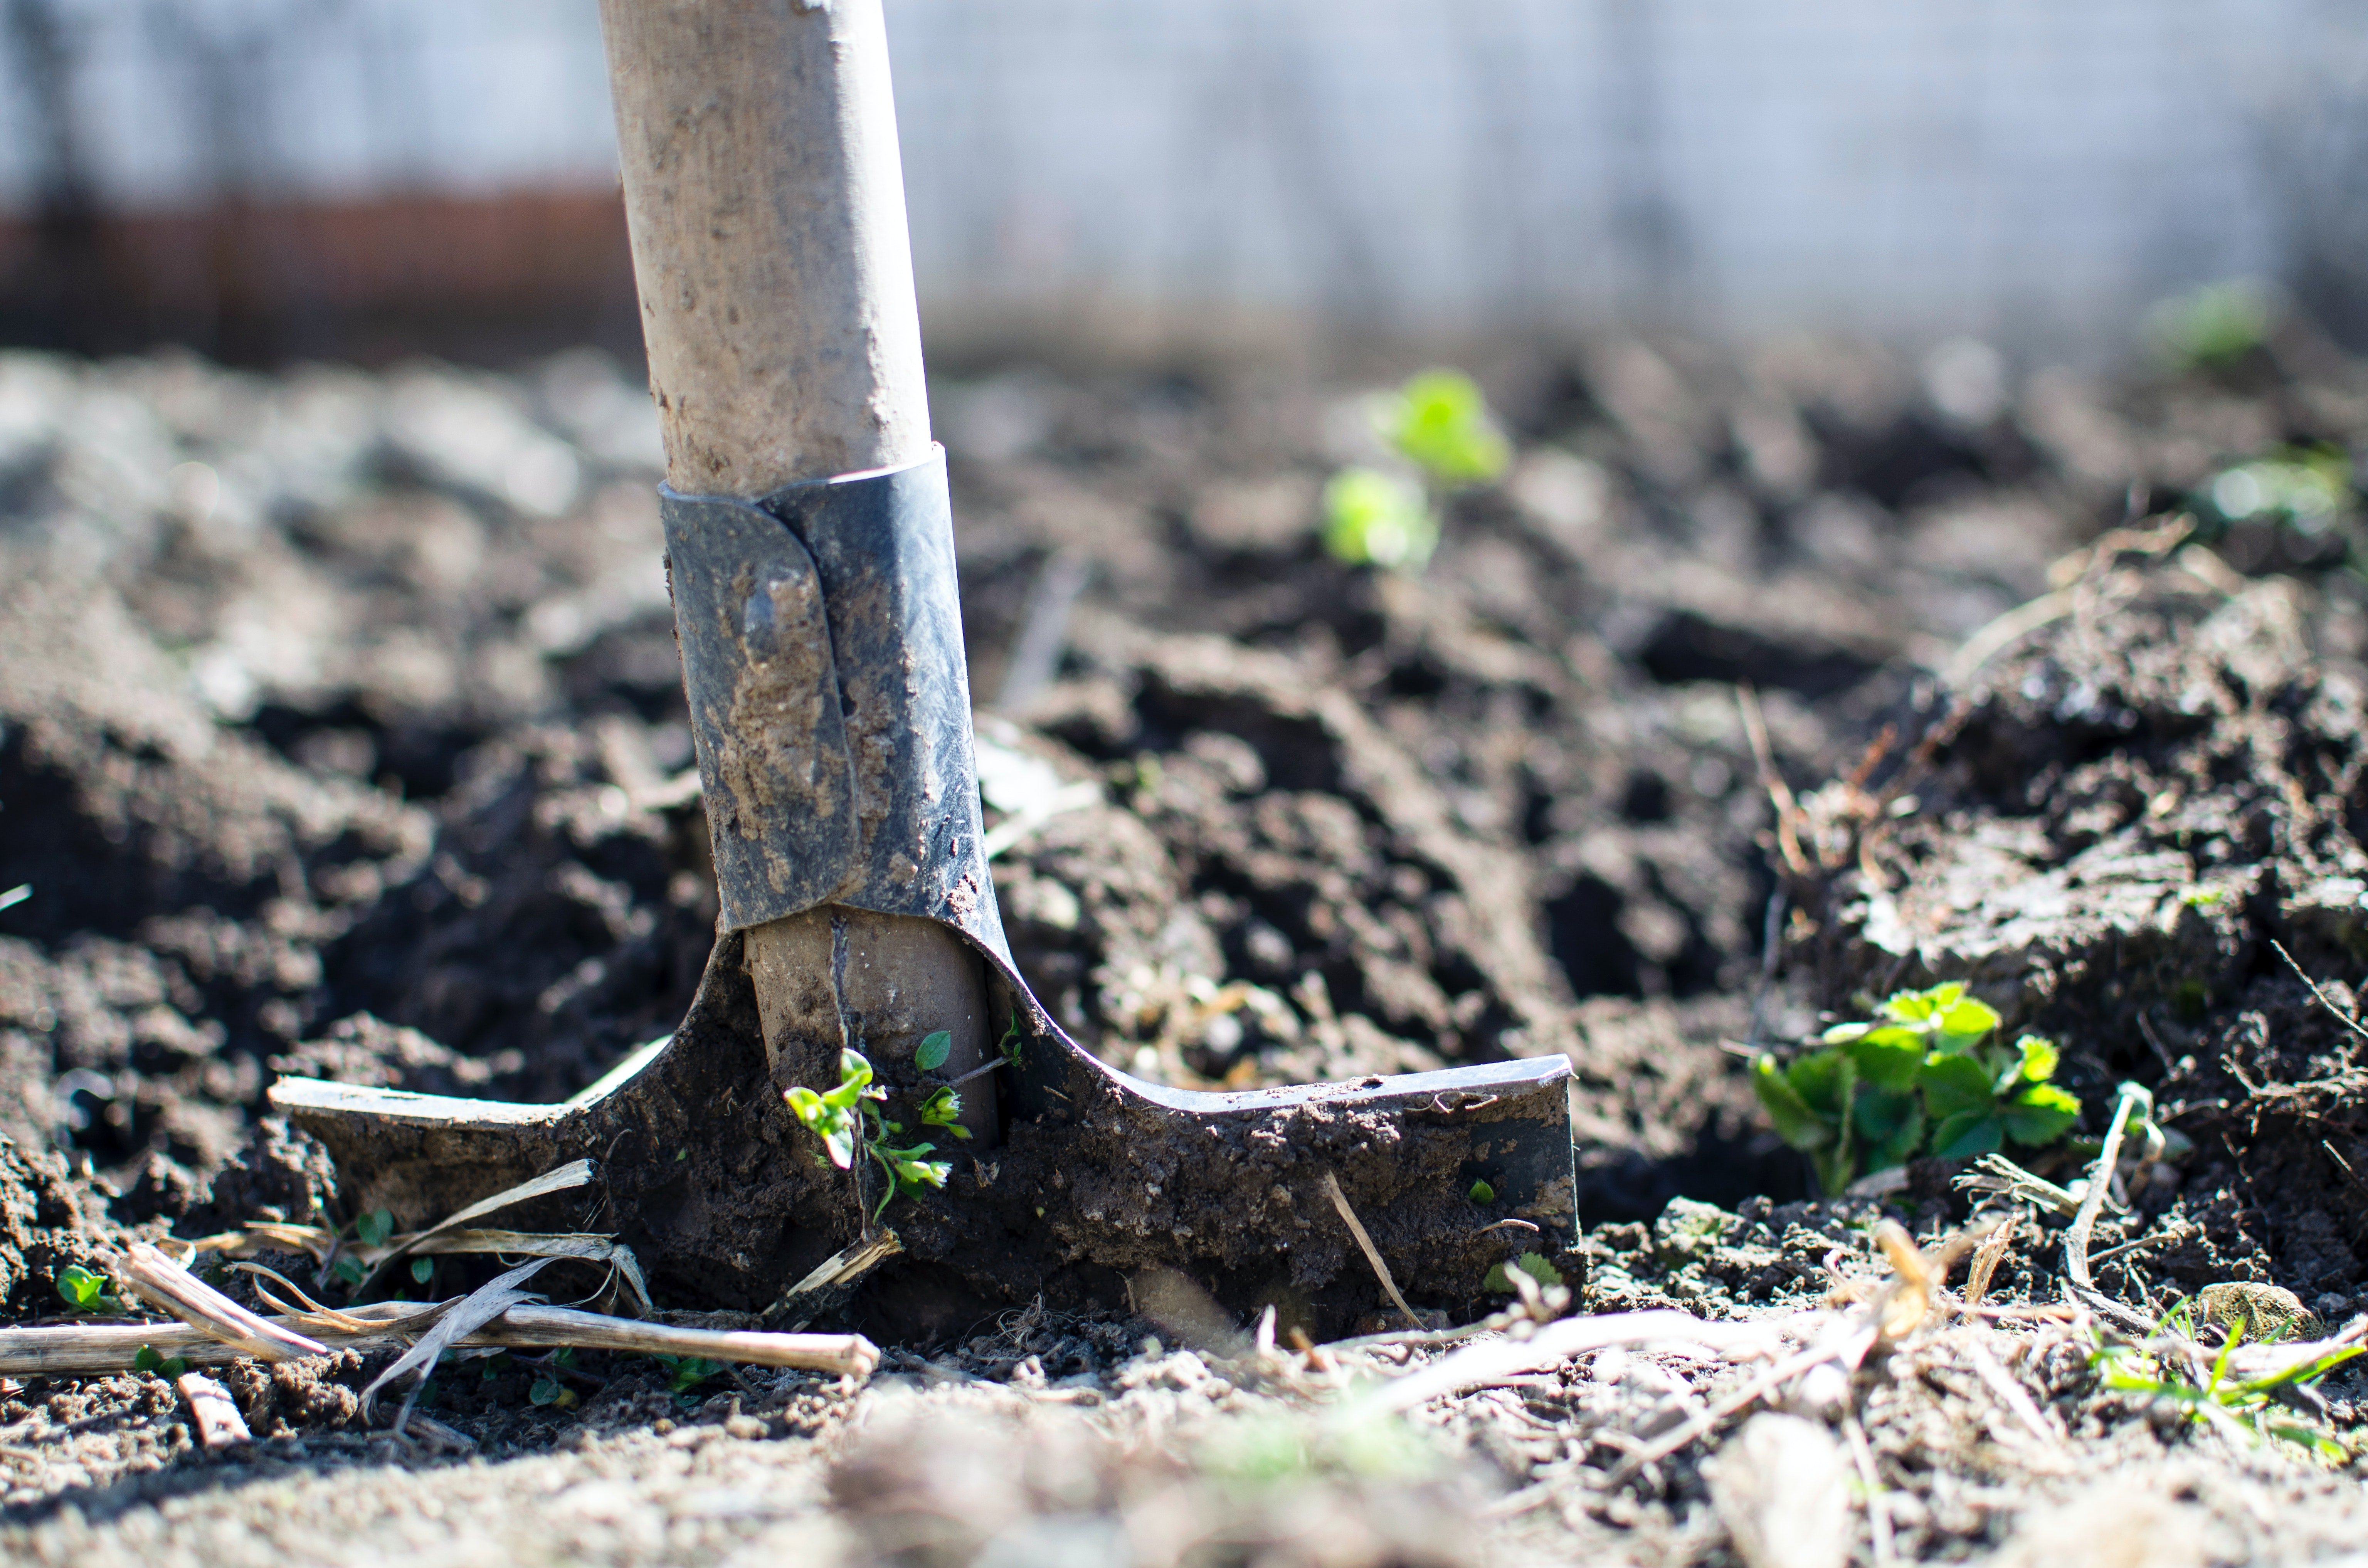 A shovel for digging a hole | Photo: Pexels